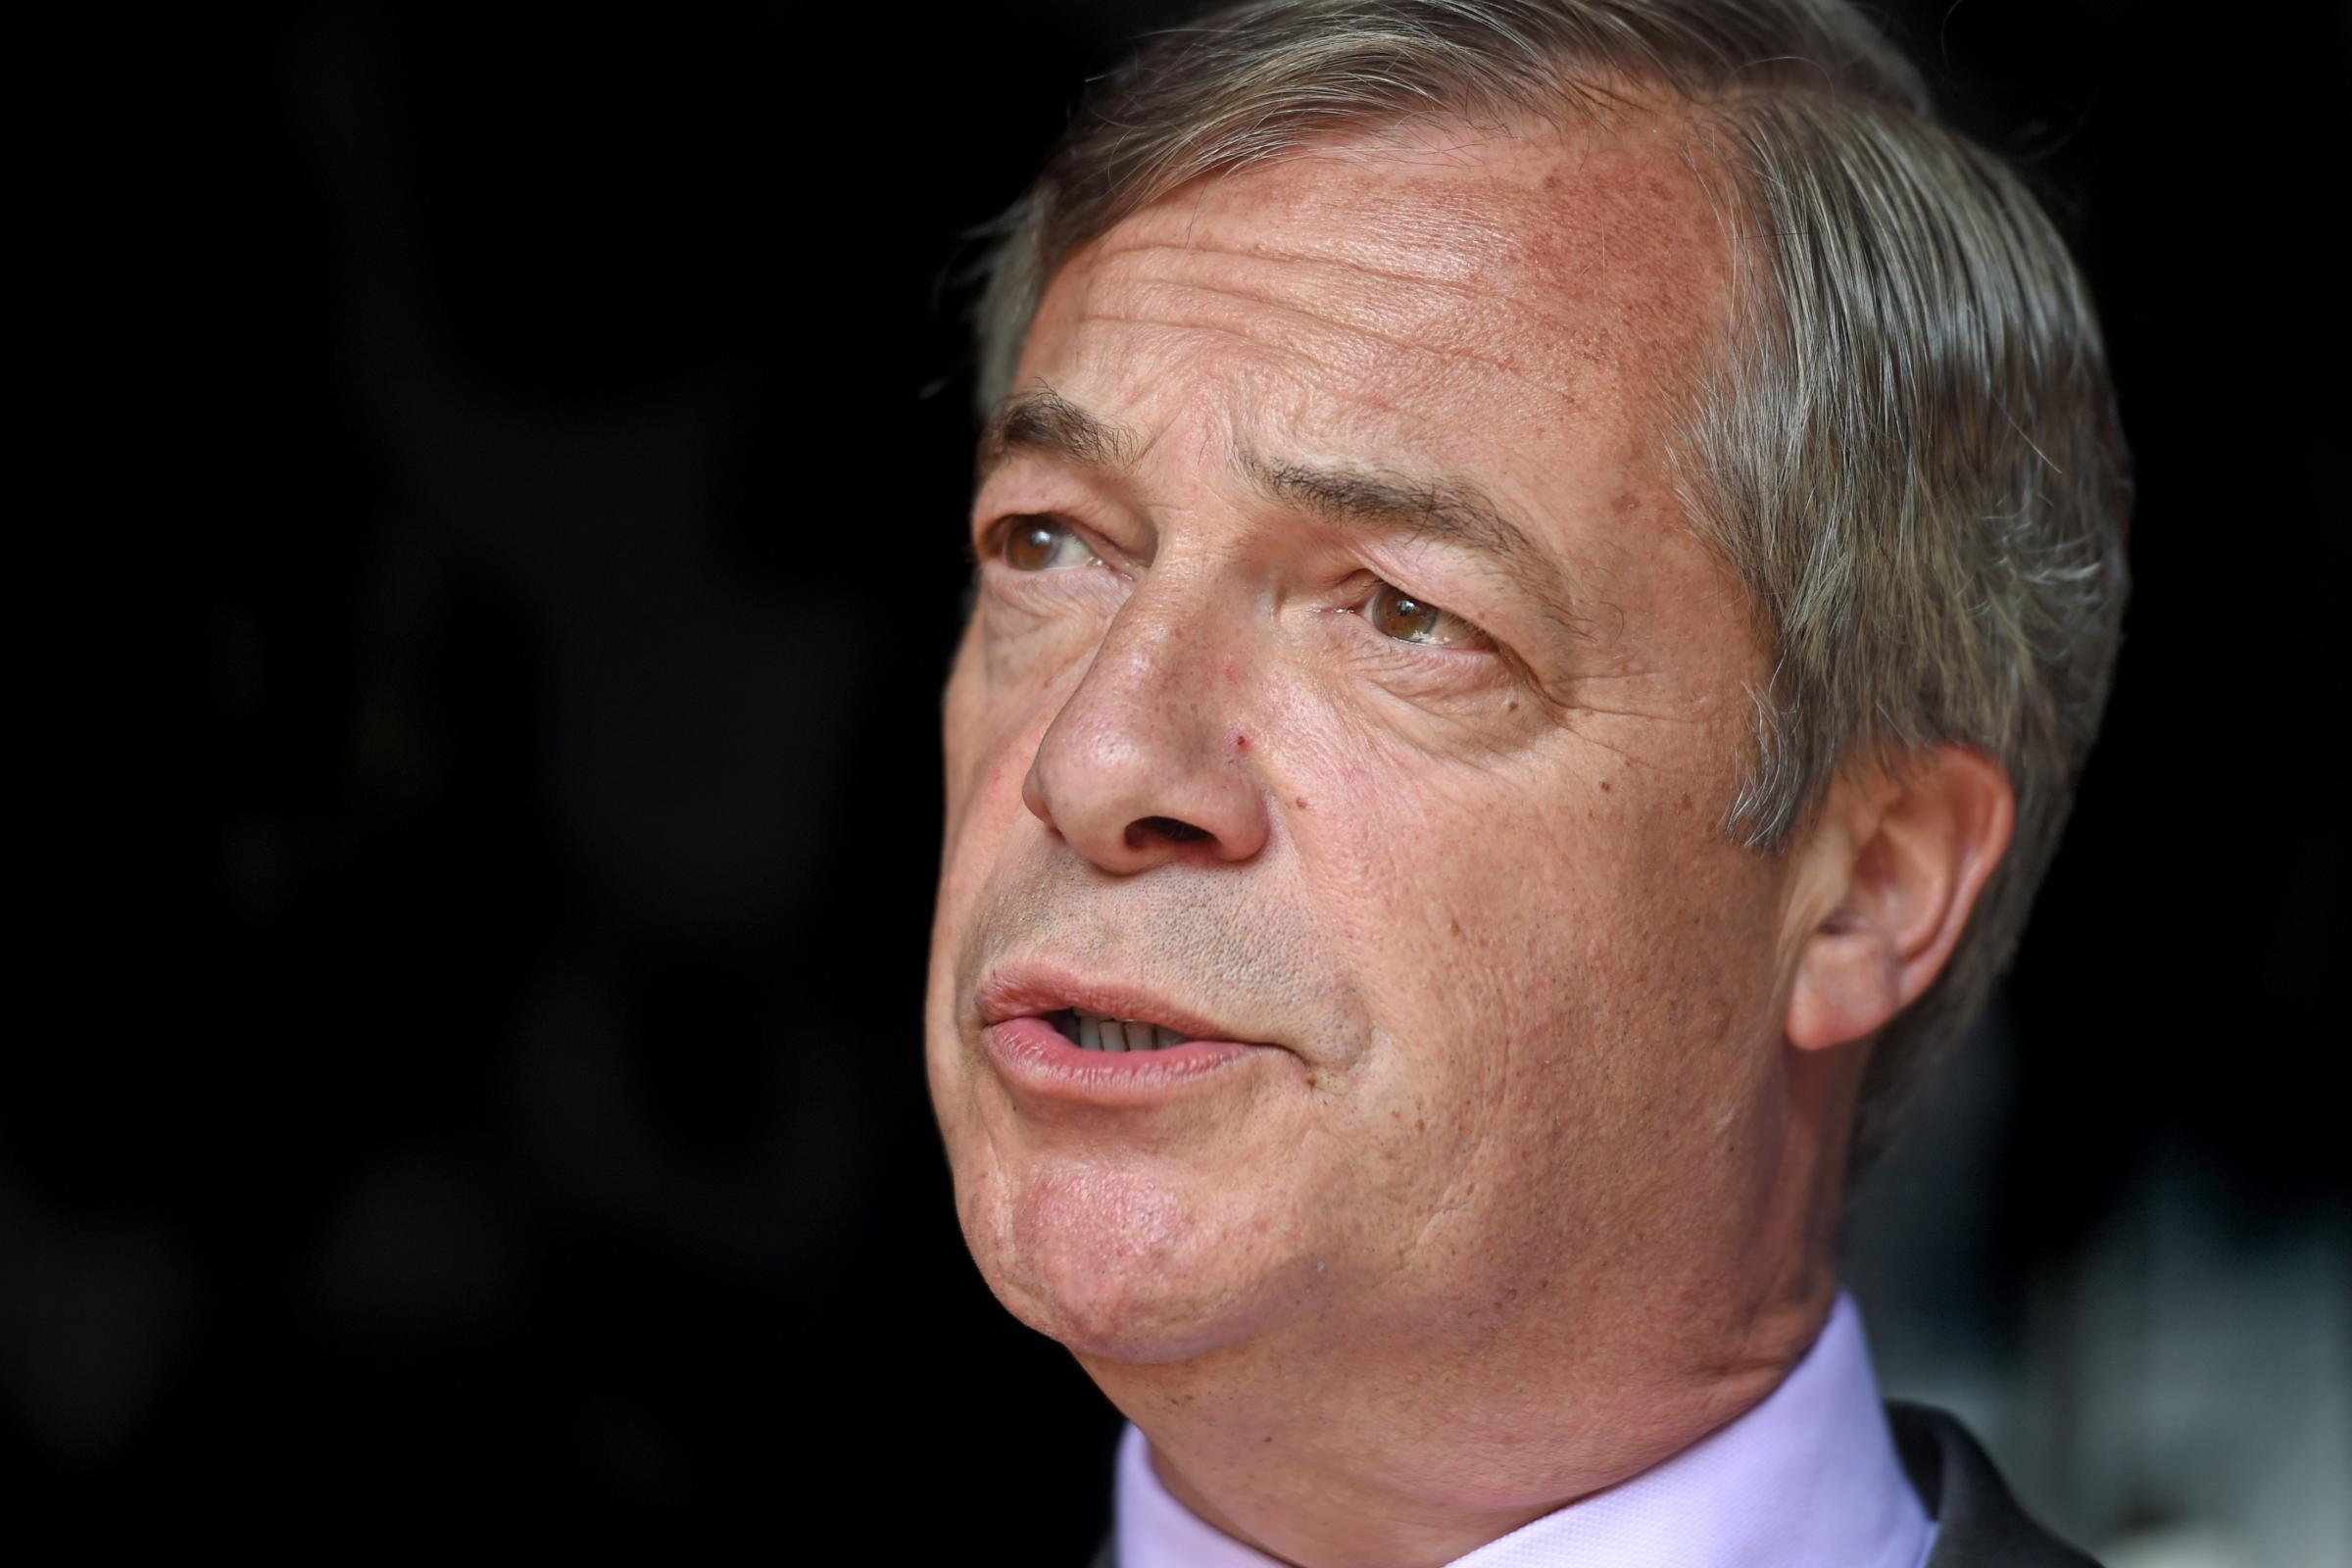 Brexit Party leader Nigel Farage in Brentwood, Essex while on the European election campaign trail